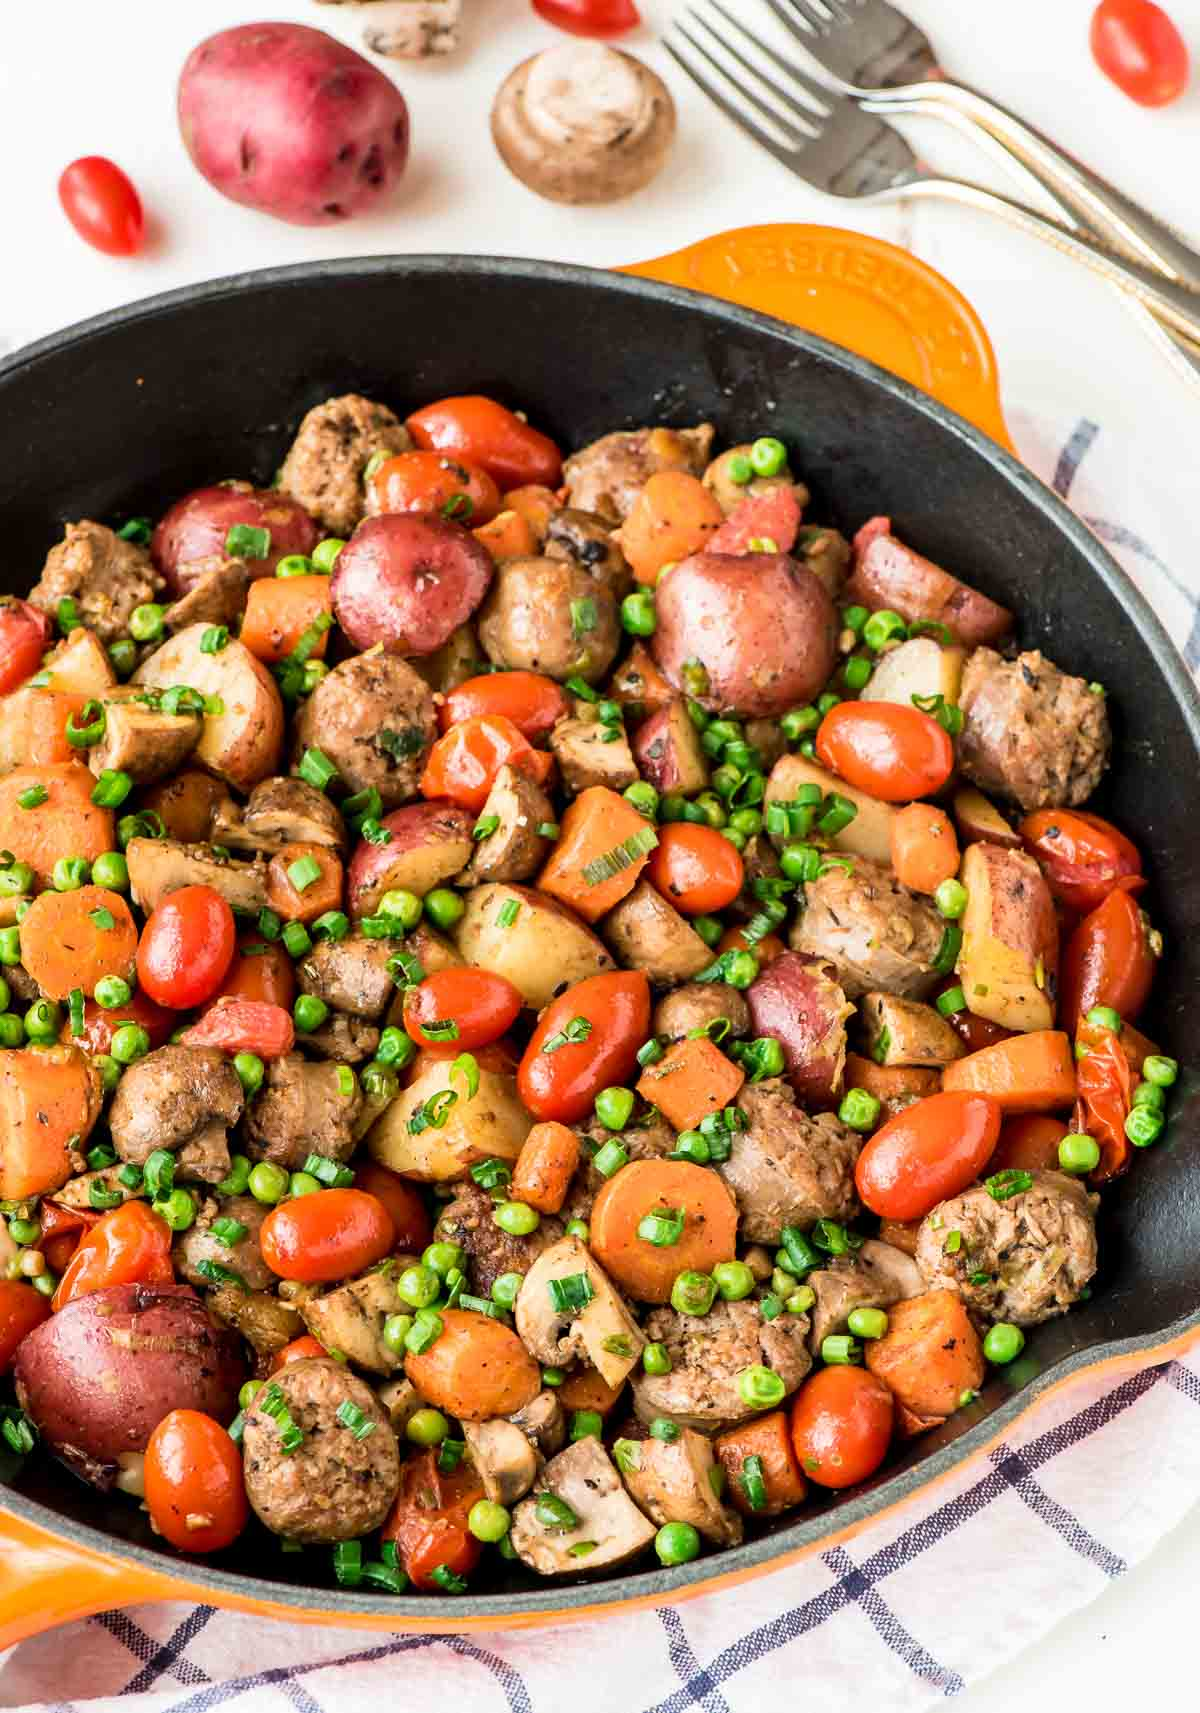 Italian Sausage Skillet. An easy, healthy one-pan dinner! Packed with fresh veggies, potatoes, and smoky sausage, this simple recipe is filling an delicious. @wellplated